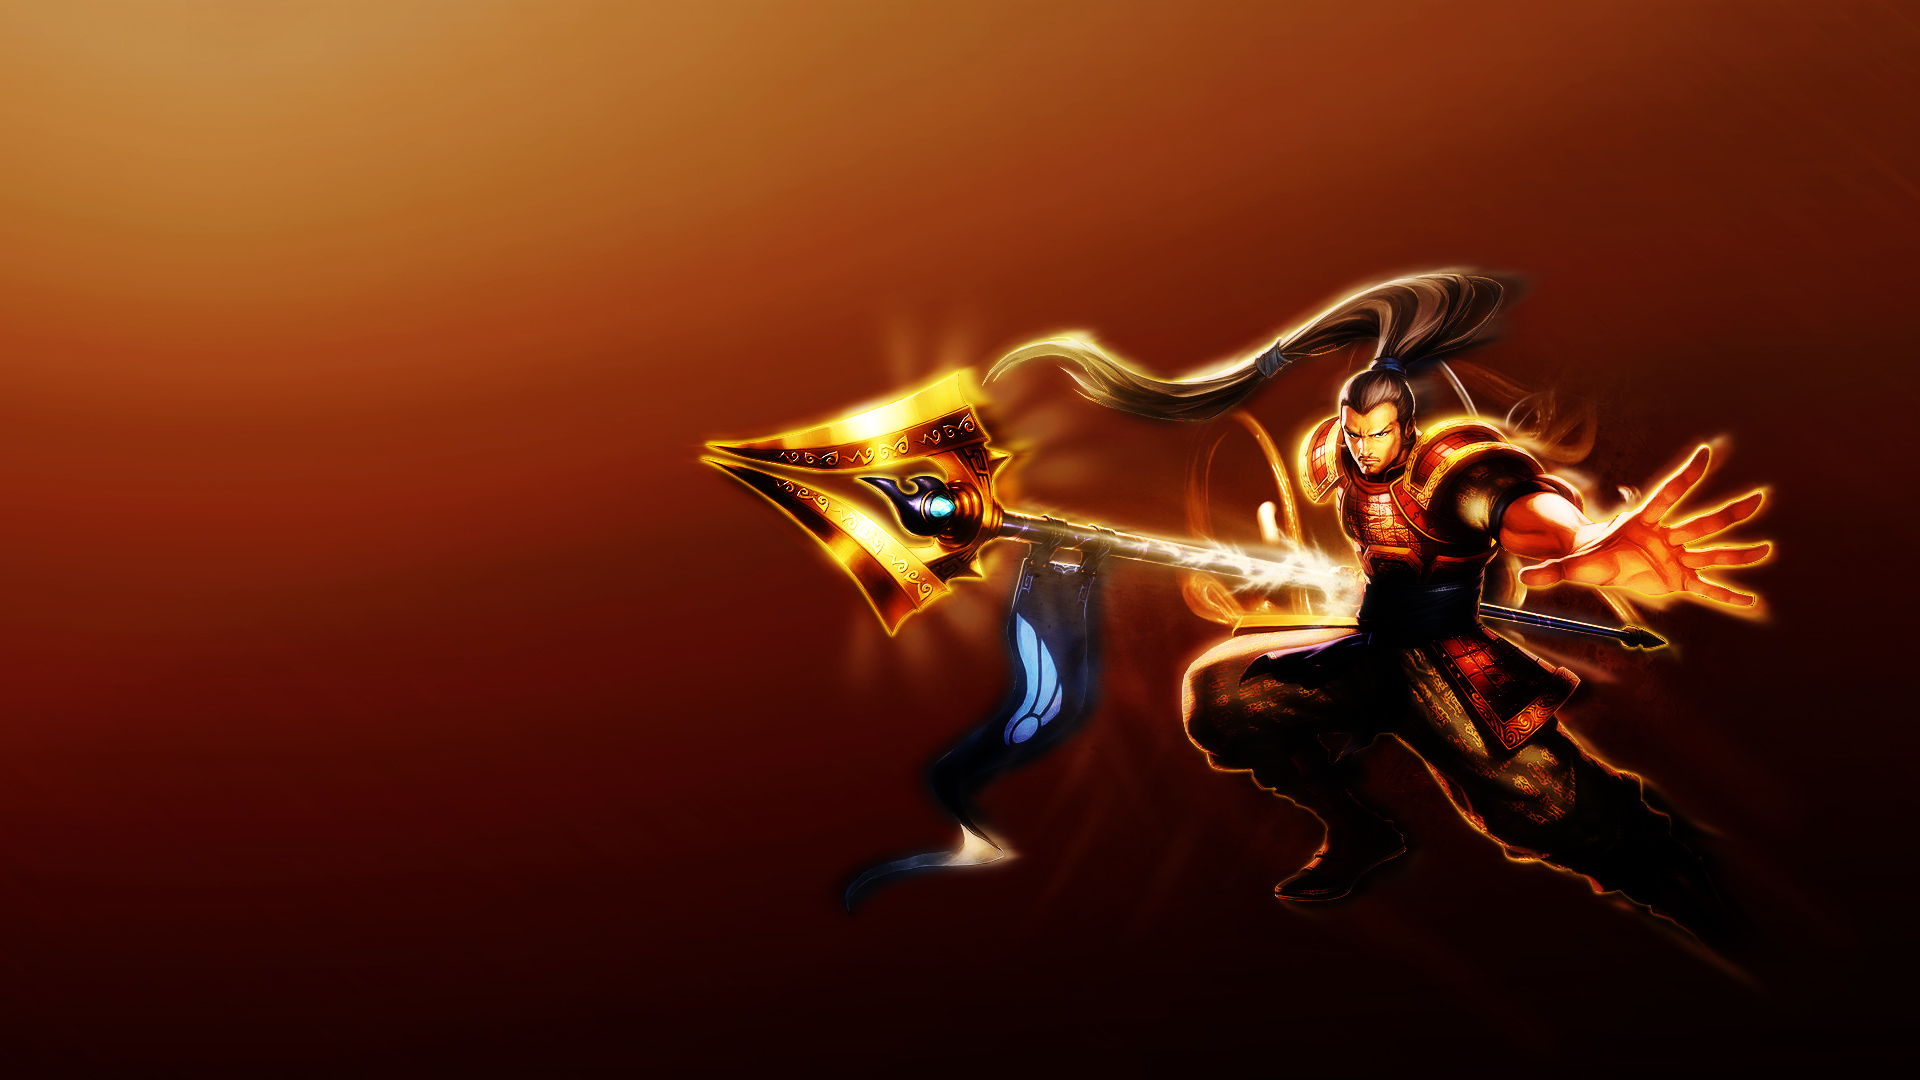 League of Legends wallpaper 166